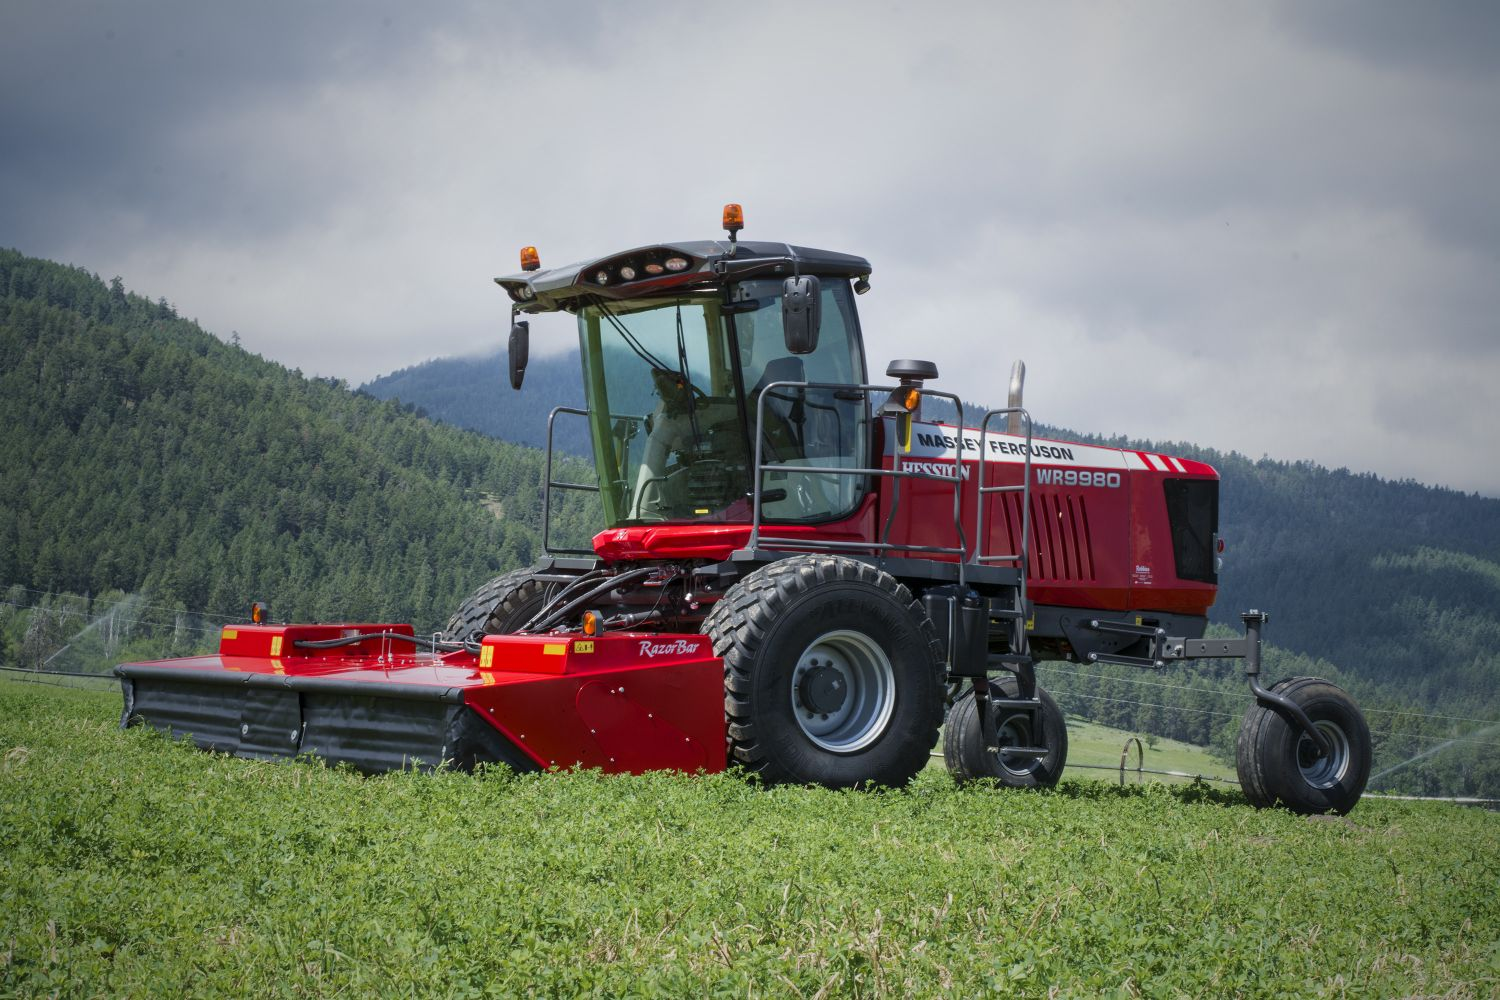 Hesston by Massey Ferguson Introduces 9300 Series RazorBar Rotary Disc Headers